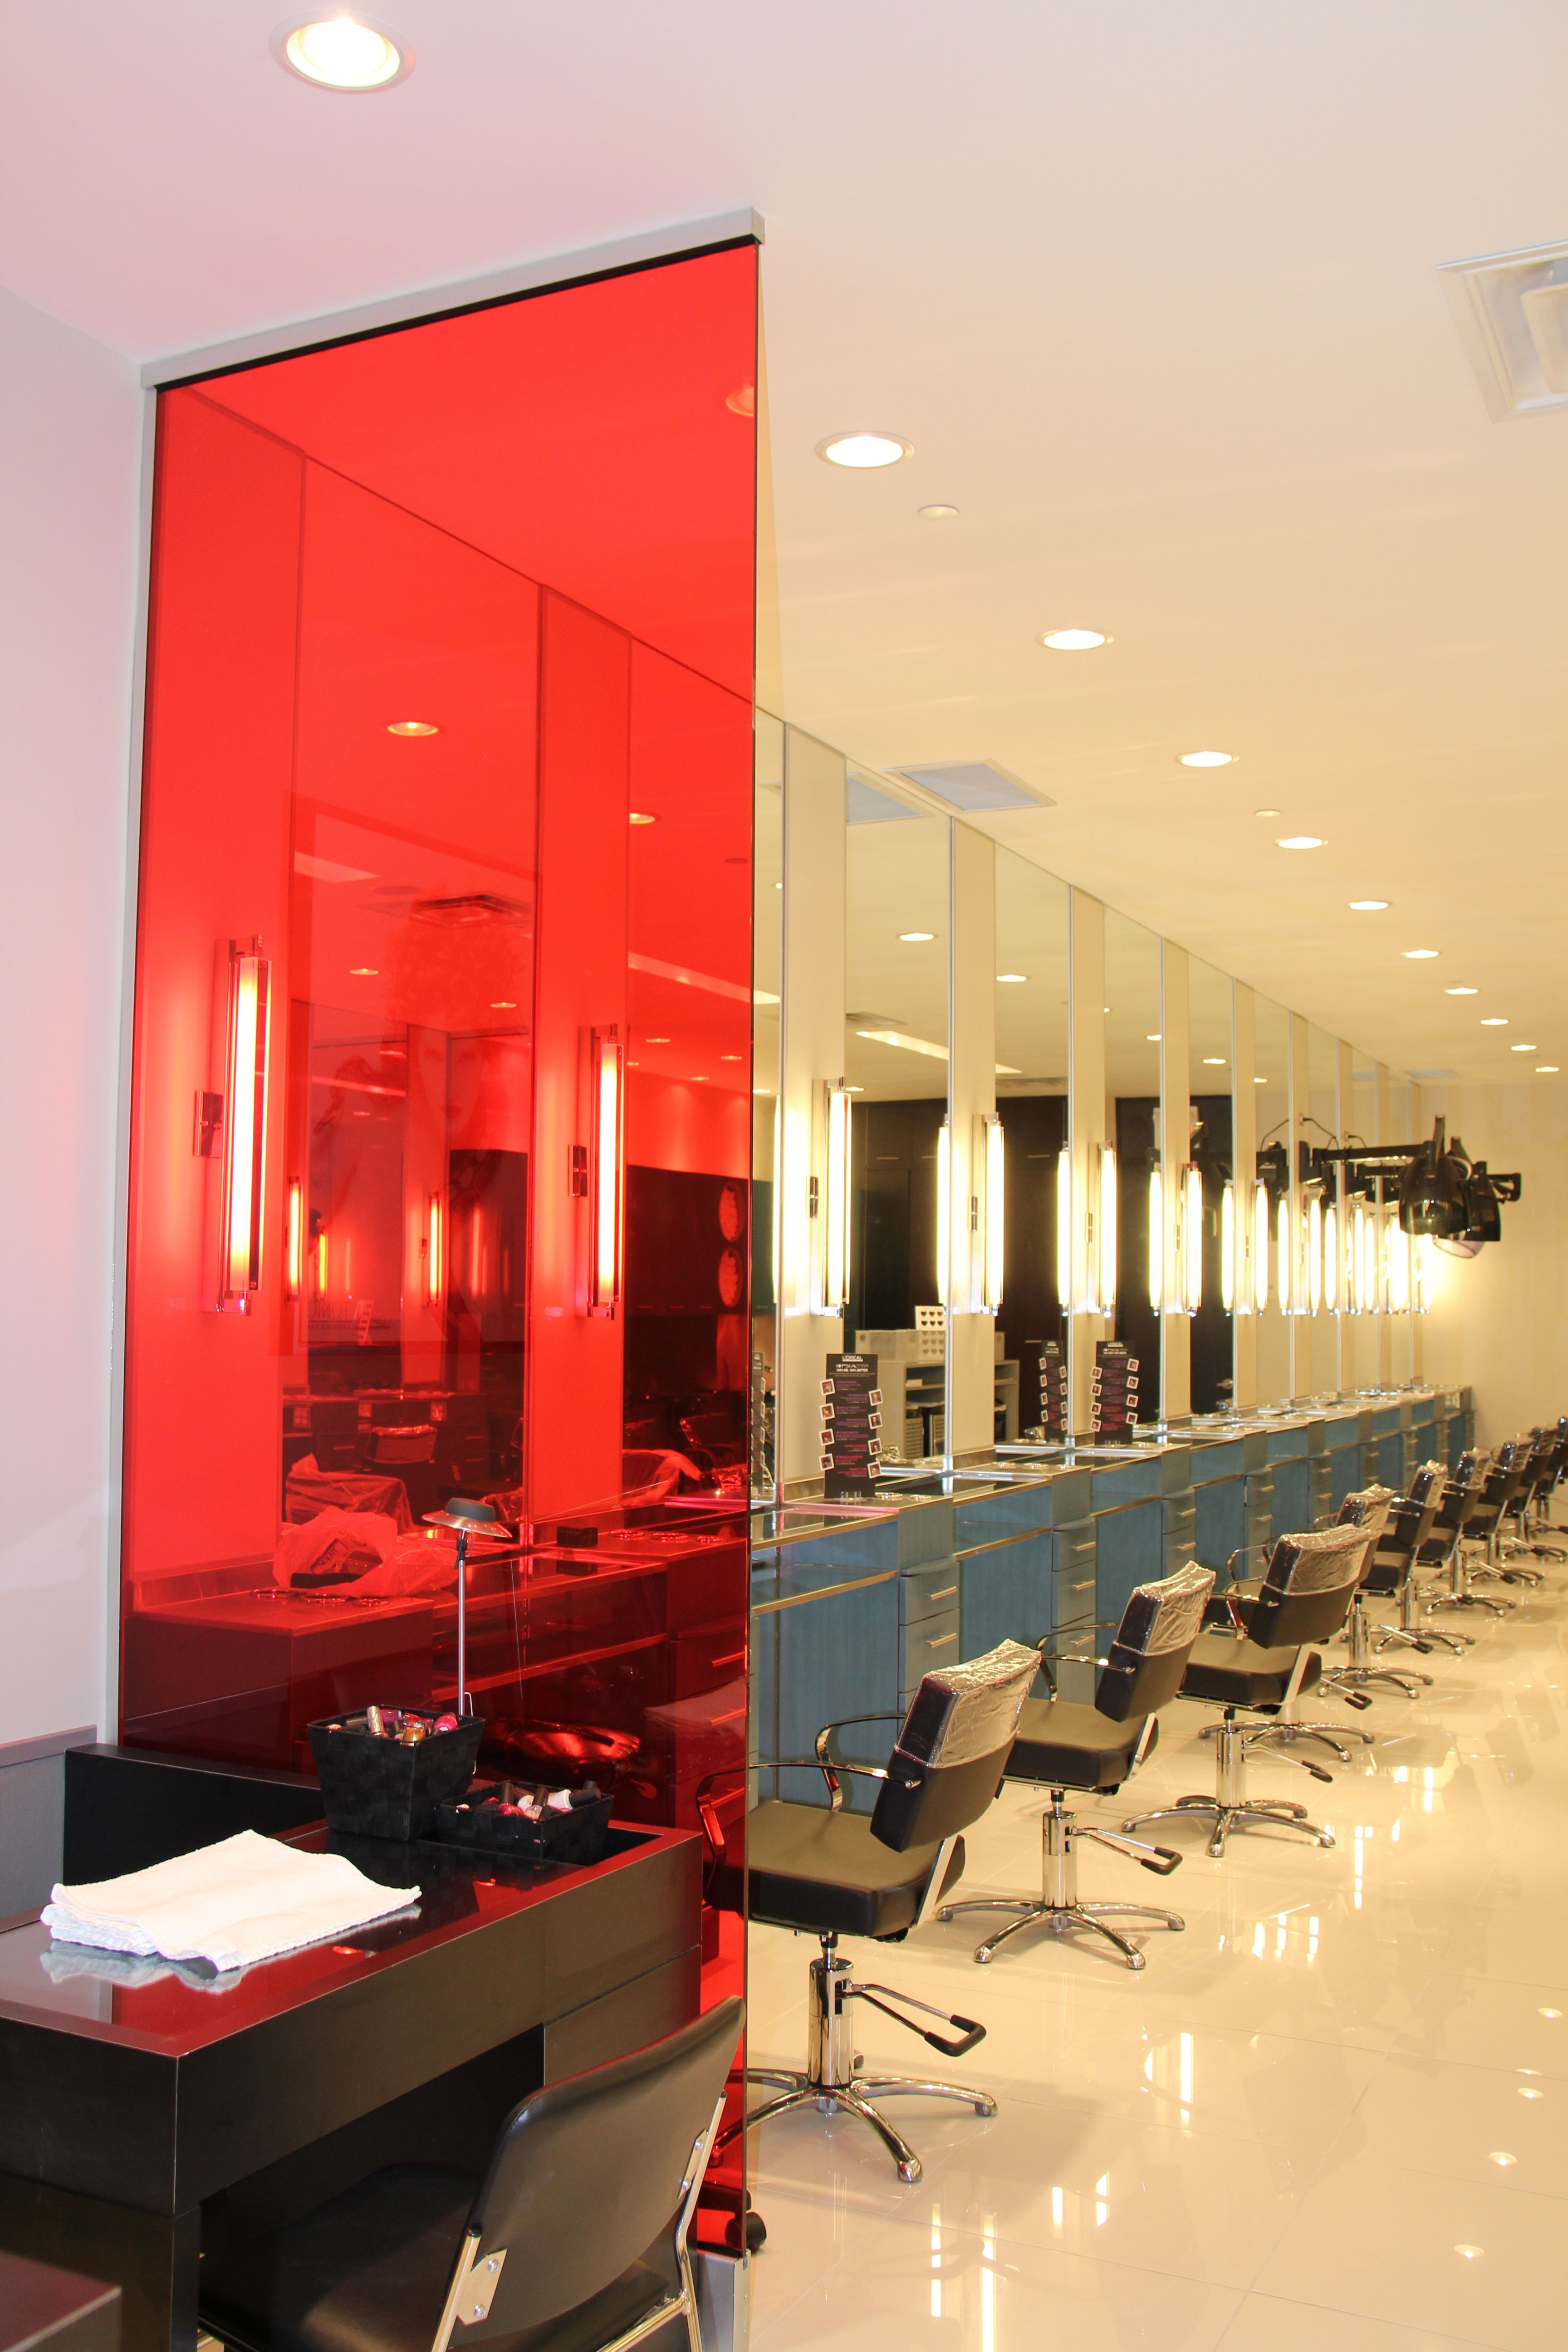 Rows of blue stylist stations with a prominent Red glass wall accent